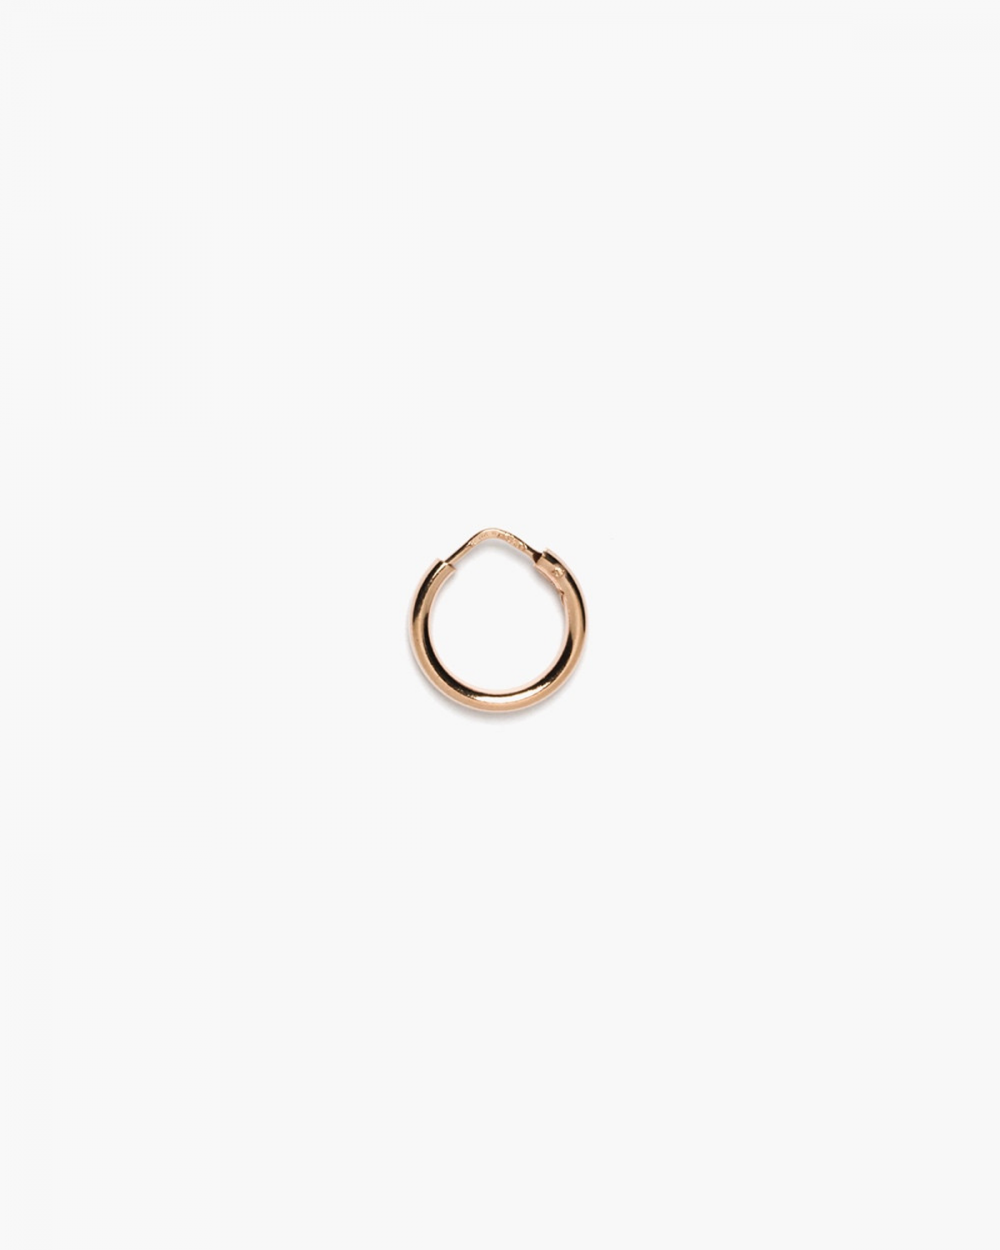 round tube 25 closing pin single hoop earring polished rose gold